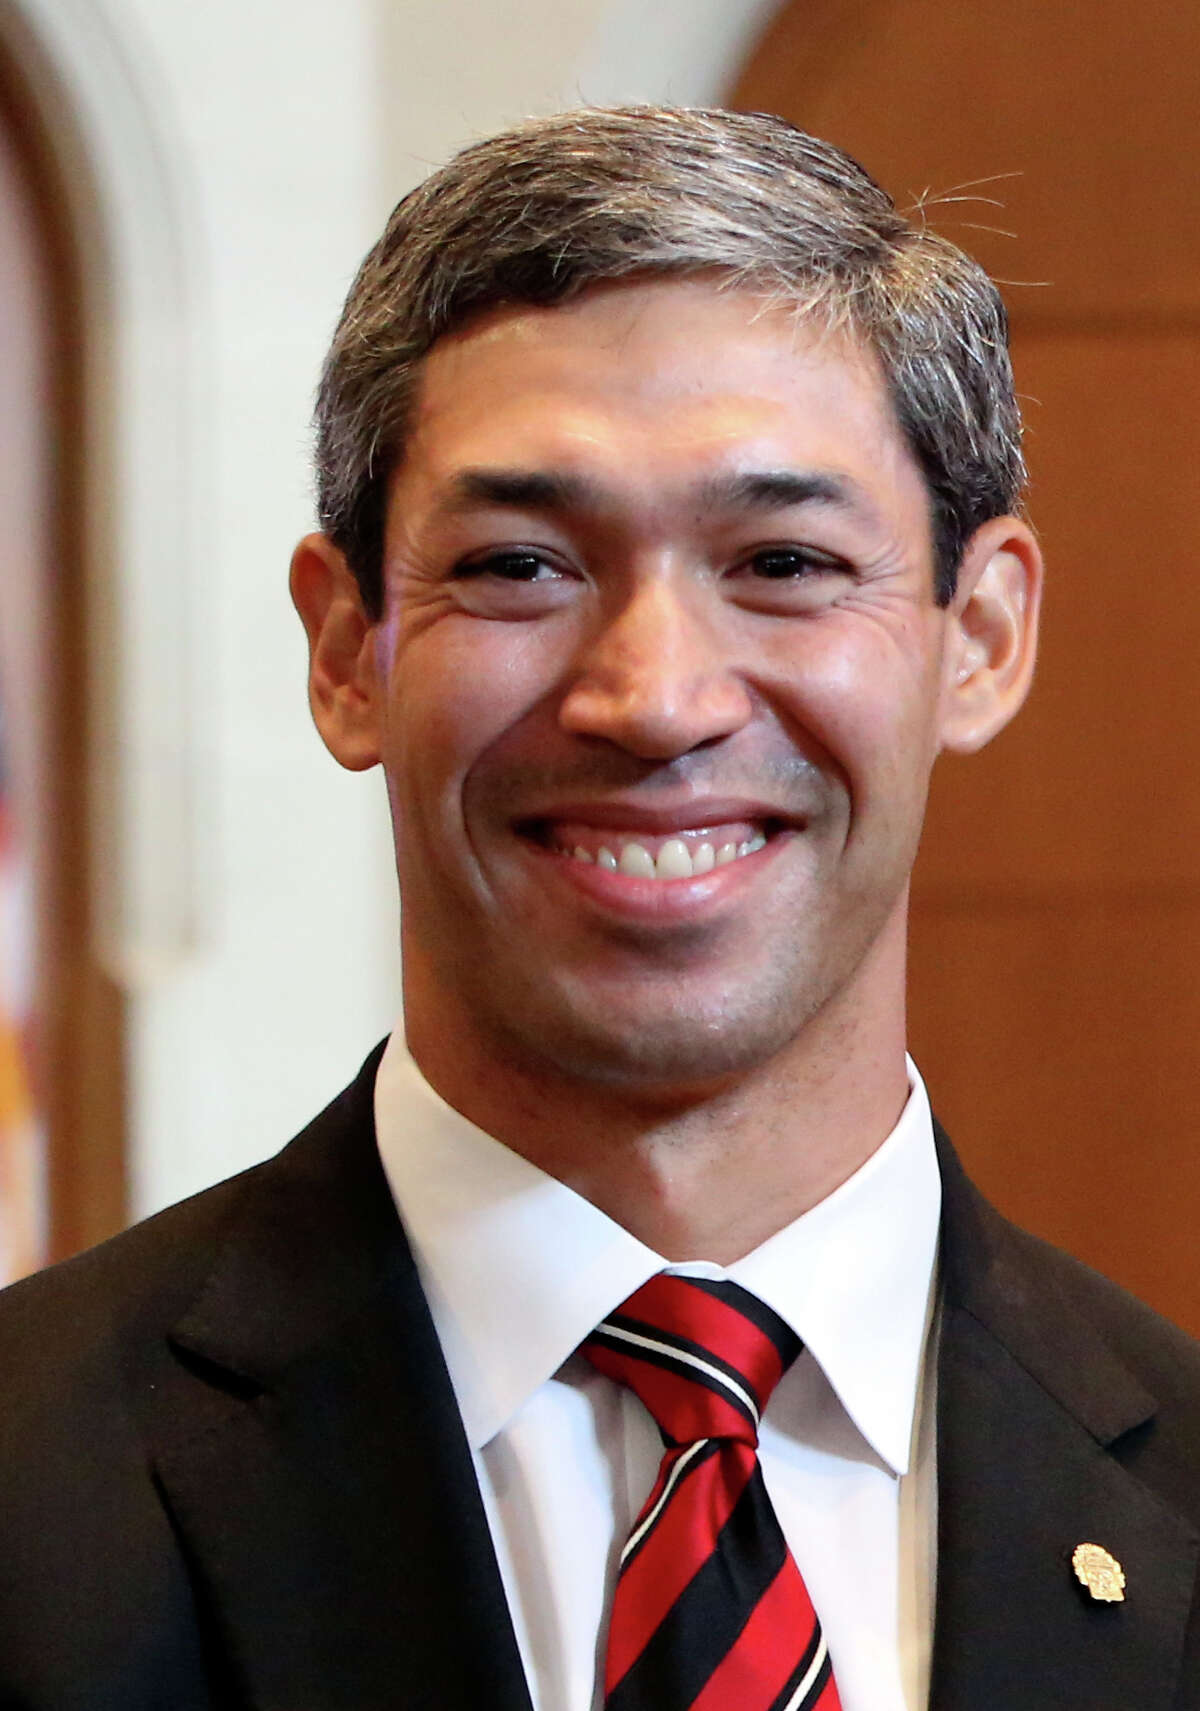 Ron Nirenberg - Having defeated the establishment candidate in a 2013 runoff election, Nirenberg has ruffled some feathers at City Hall because of his hard-charging ambition. He was the first member of council to announce his intention to seek the interim mayoral post -- and a full term in 2015 -- saying so just hours after news broke the Castro had been nominated by President Barack Obama to hold a Cabinet position.